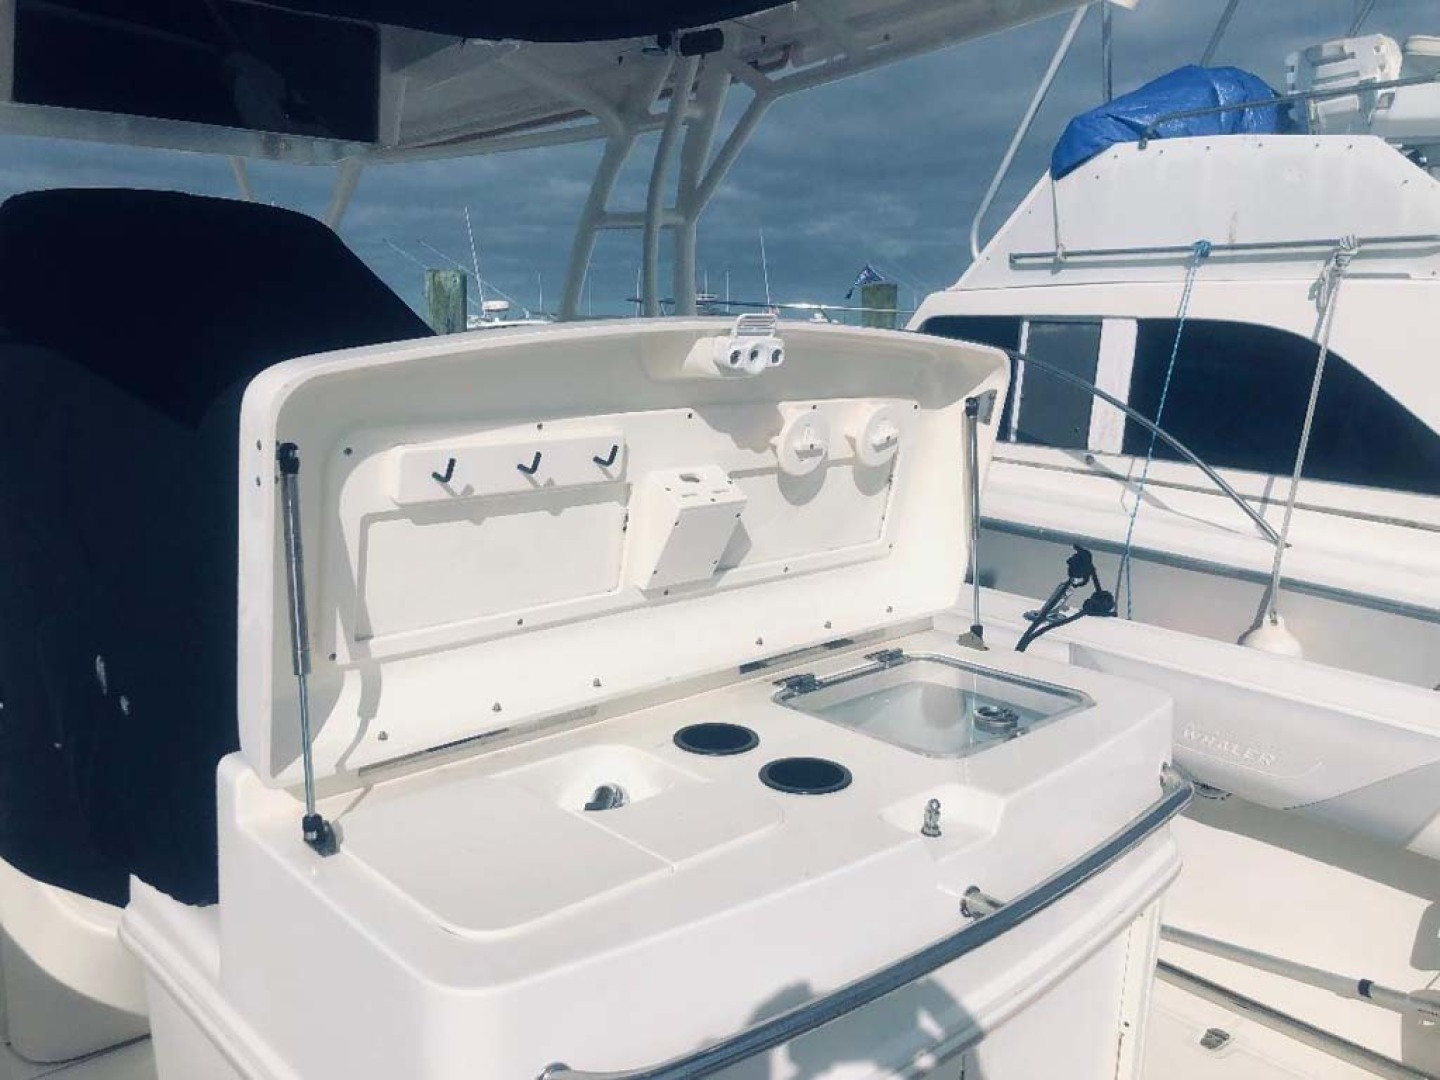 Boston Whaler-320 Outrage 2011 -Cape May-New Jersey-United States-Bait Prep Station-1237229 | Thumbnail